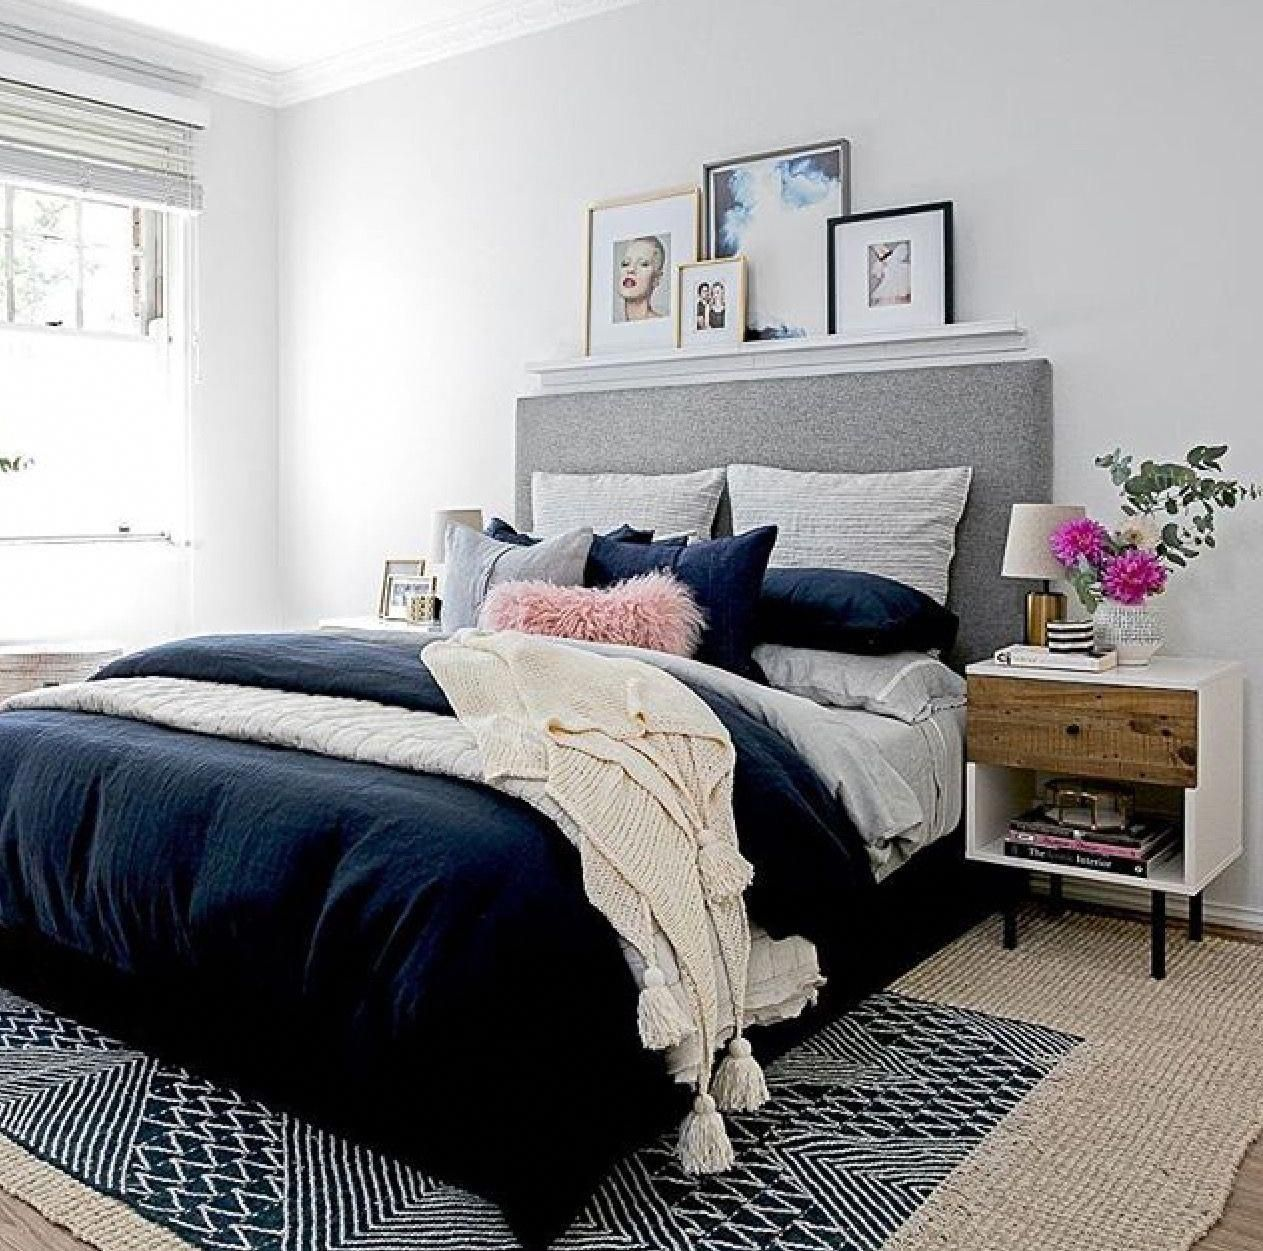 Warm Bedroom Ideas Creative To Incredible Decor Styling Help